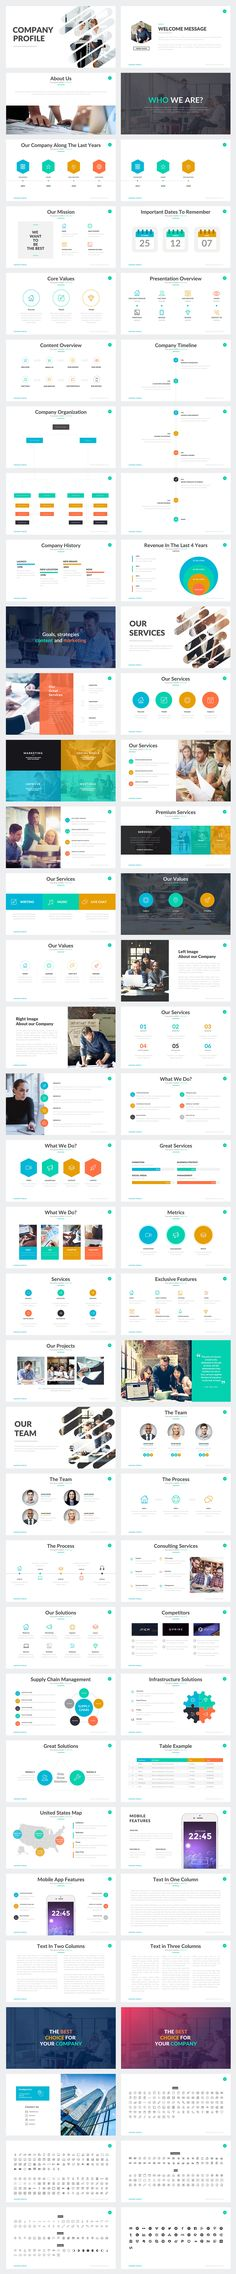 Company Profile Powerpoint Template by Rocketo Graphics on @creativemarket